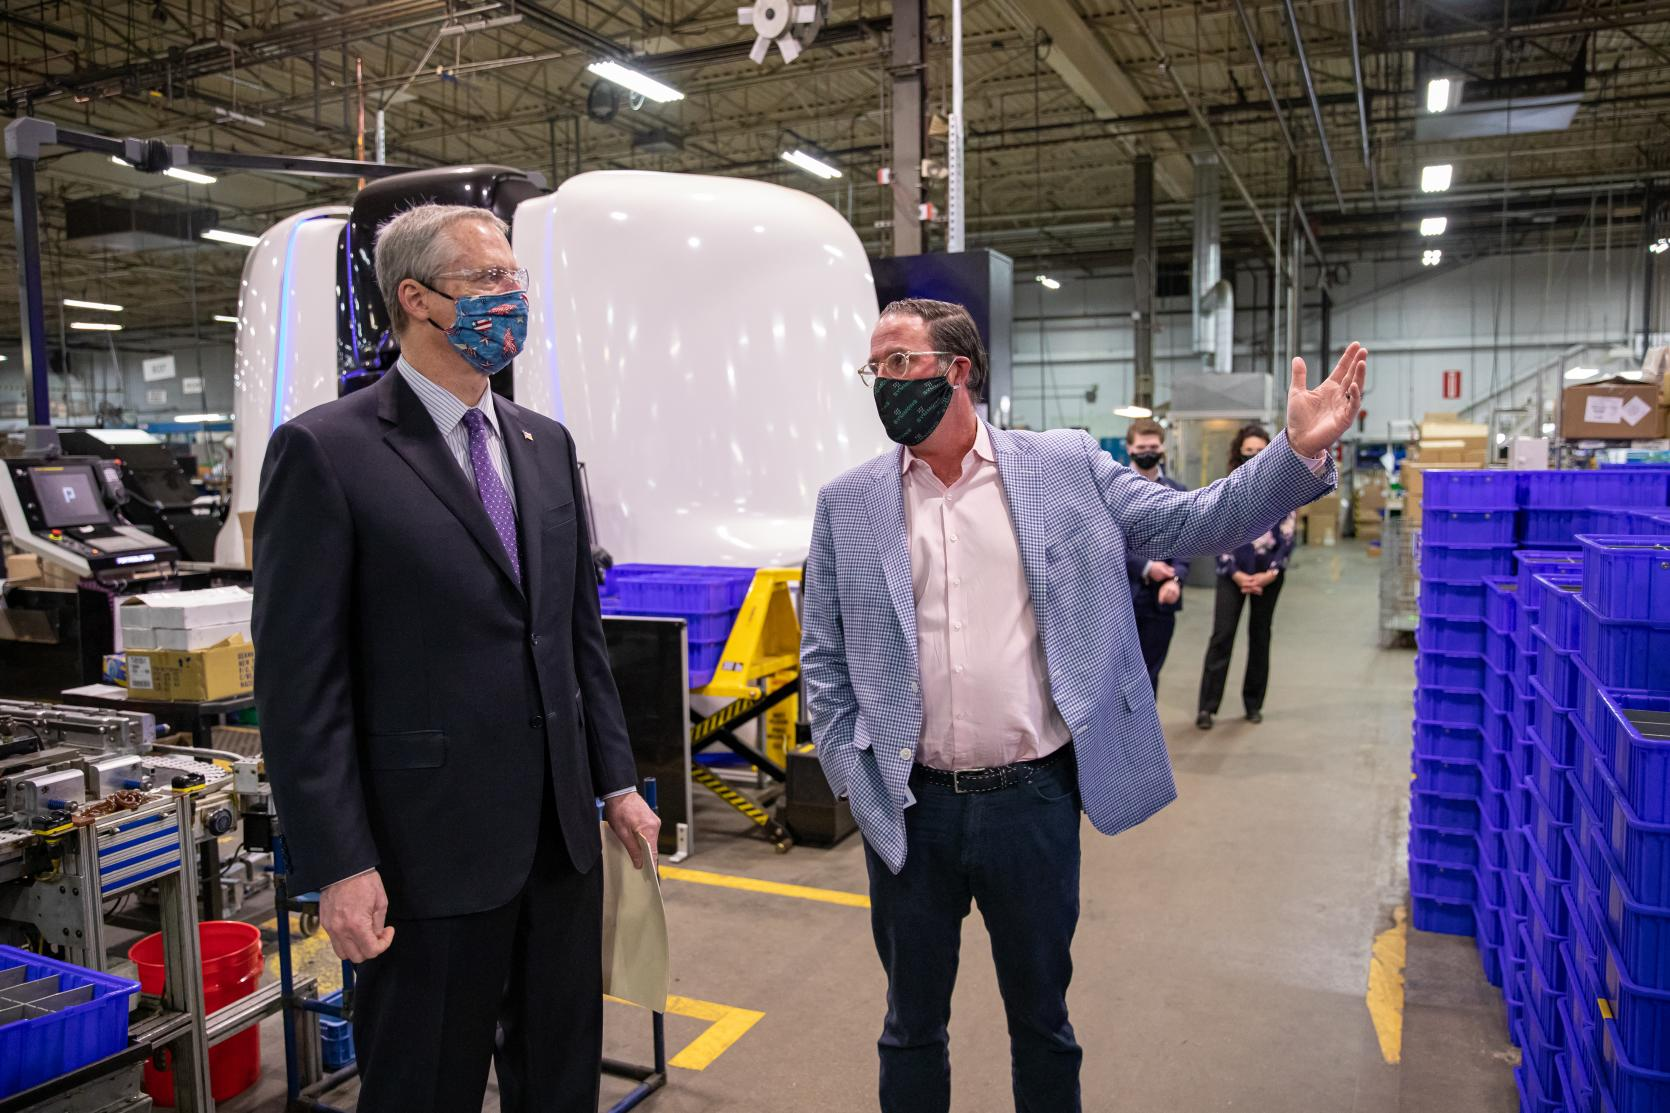 Governor Baker, Lt. Governor Polito Highlight Workplace Implementation of New COVID-19 Safety Standards at Symmons Industries in Braintree